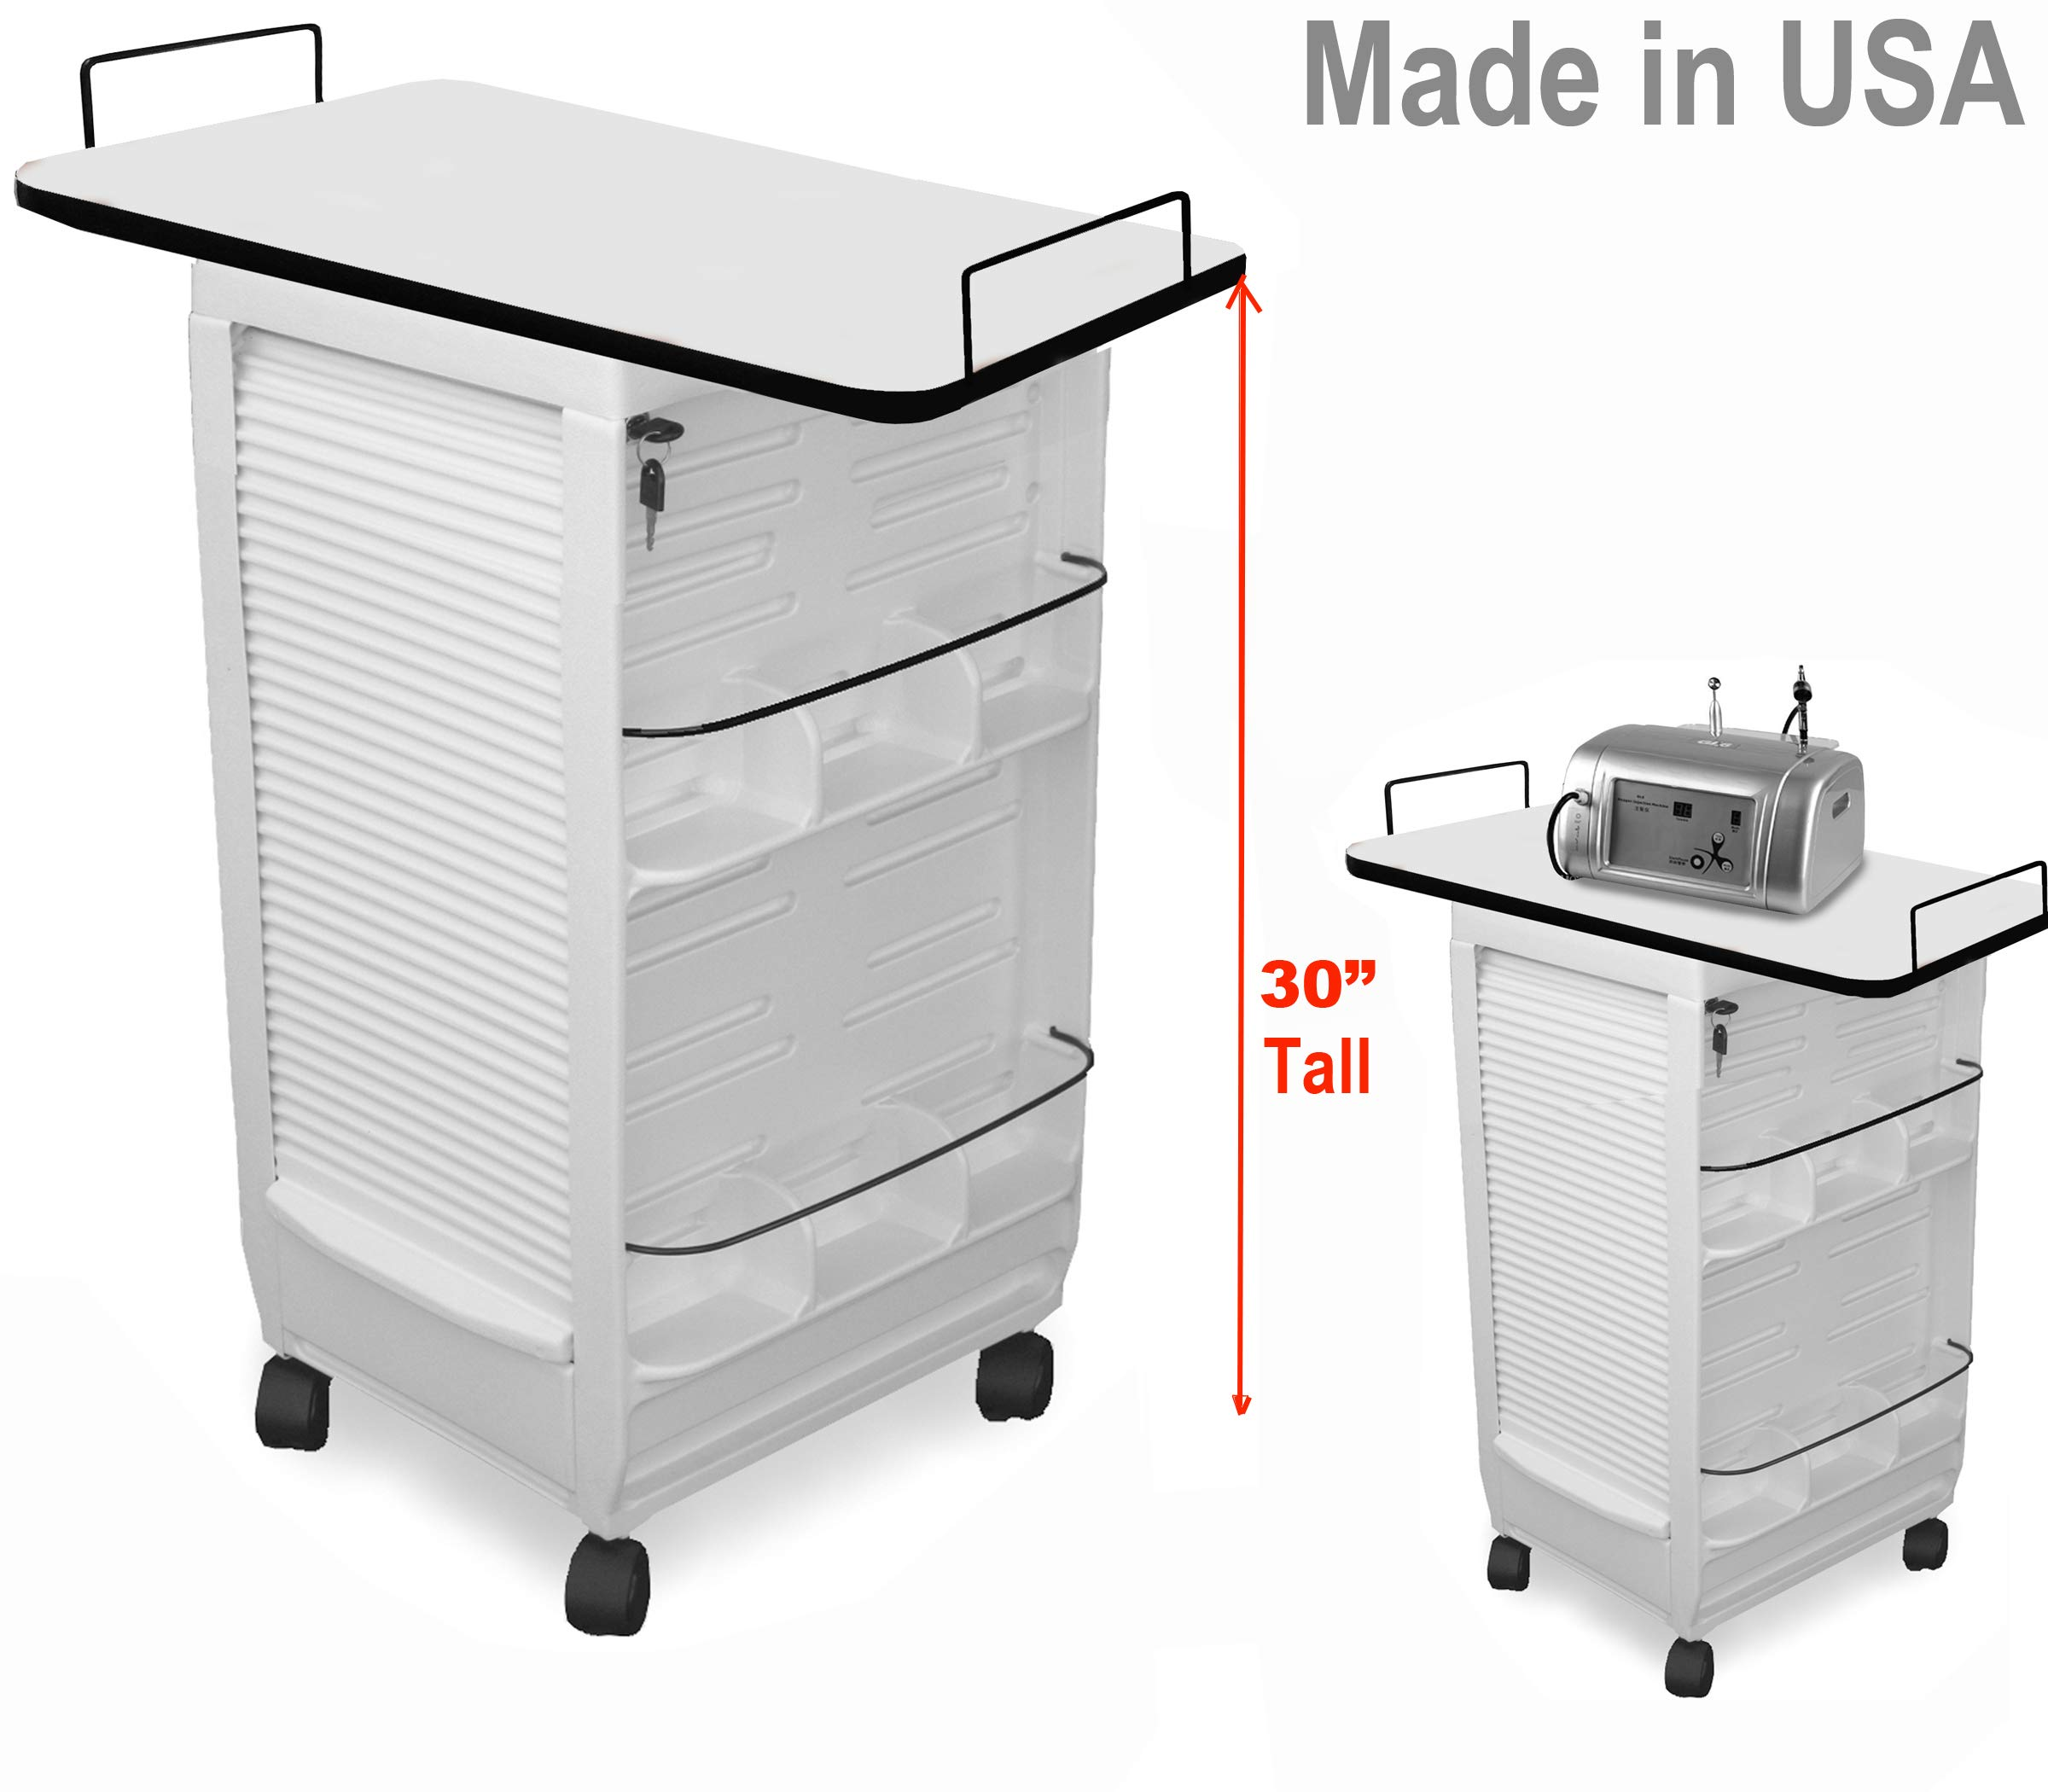 C185E-LT Mini Medical Physician Roll-About Trolley Cart White W/109 Lam. top Made in USA